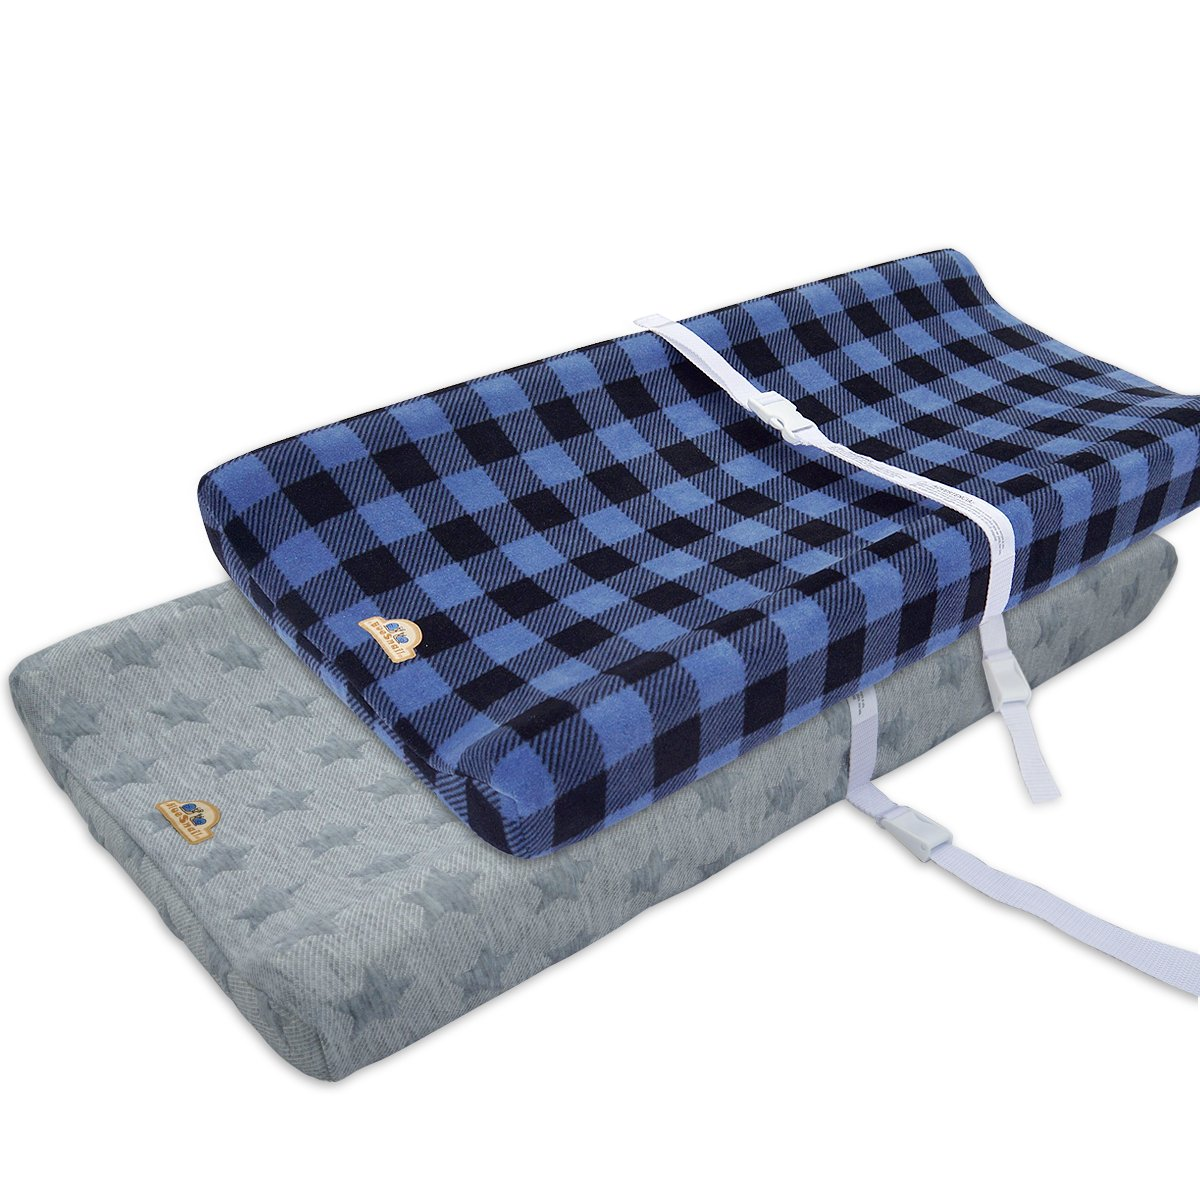 Ultra Soft and Contoured Plush Changing Pad Cover for Baby 2-Pack by BlueSnail grey plaid+star jacquard